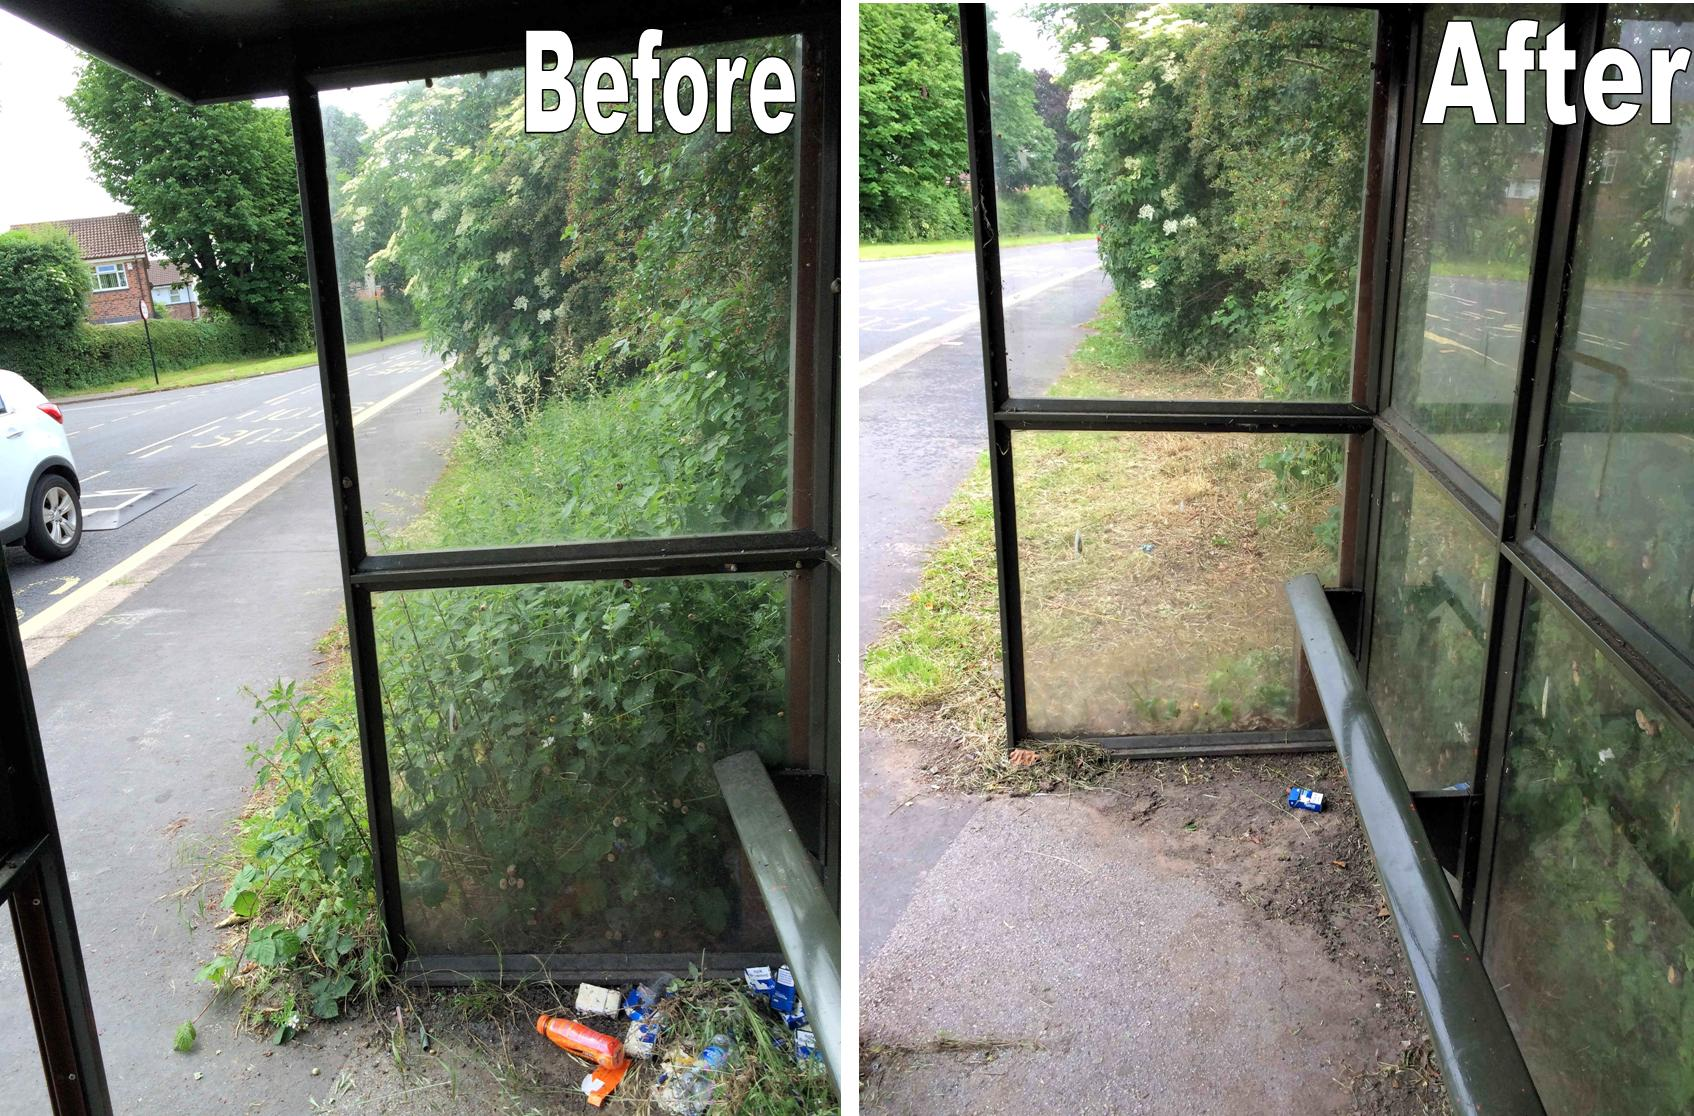 bus shelter before and after